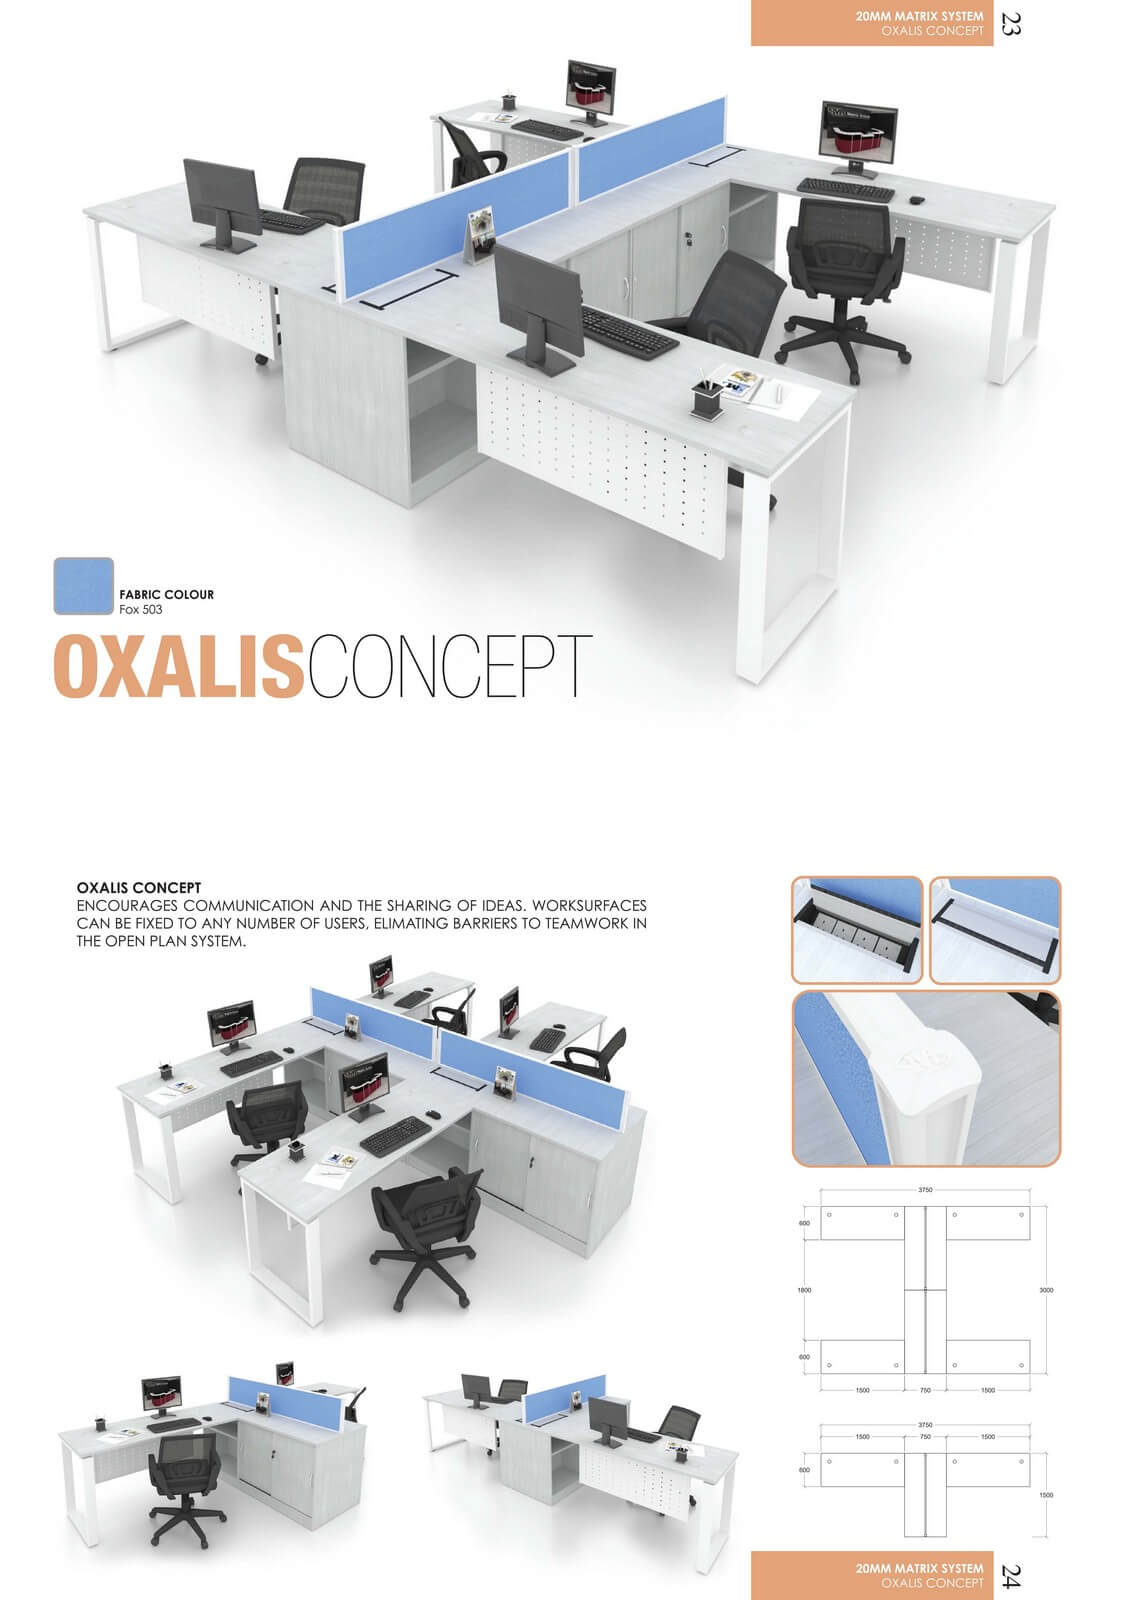 Office Workstation Oxalis Concept